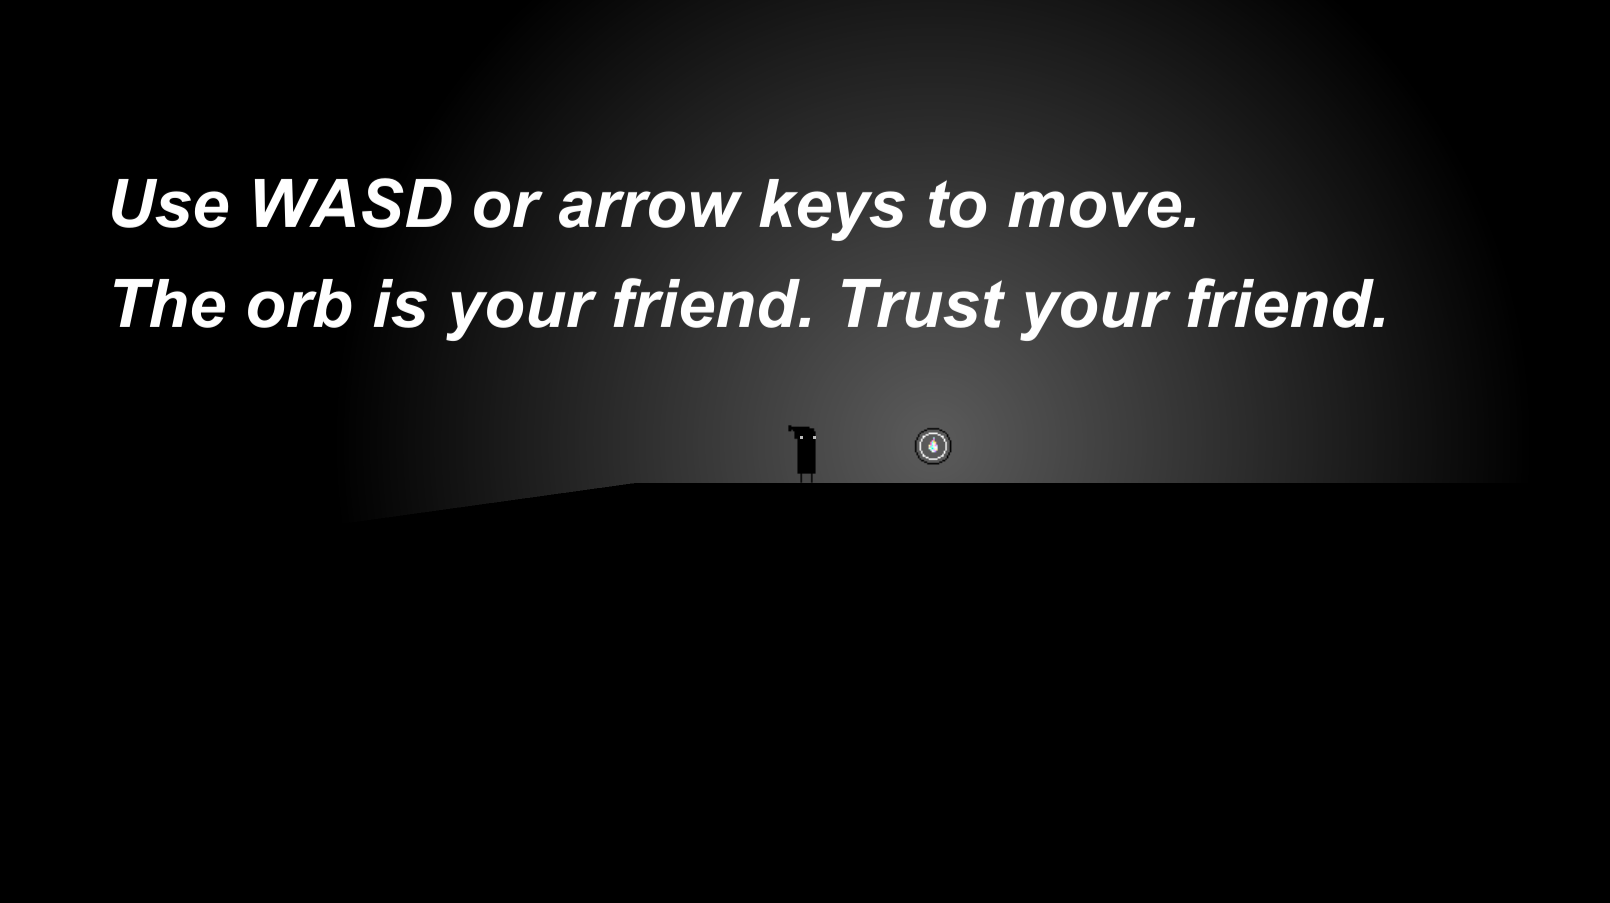 an image of the intro section of lux, text on screen says 'Use WASD or arrow keys to move. The orb is your friend. Trust your friend'